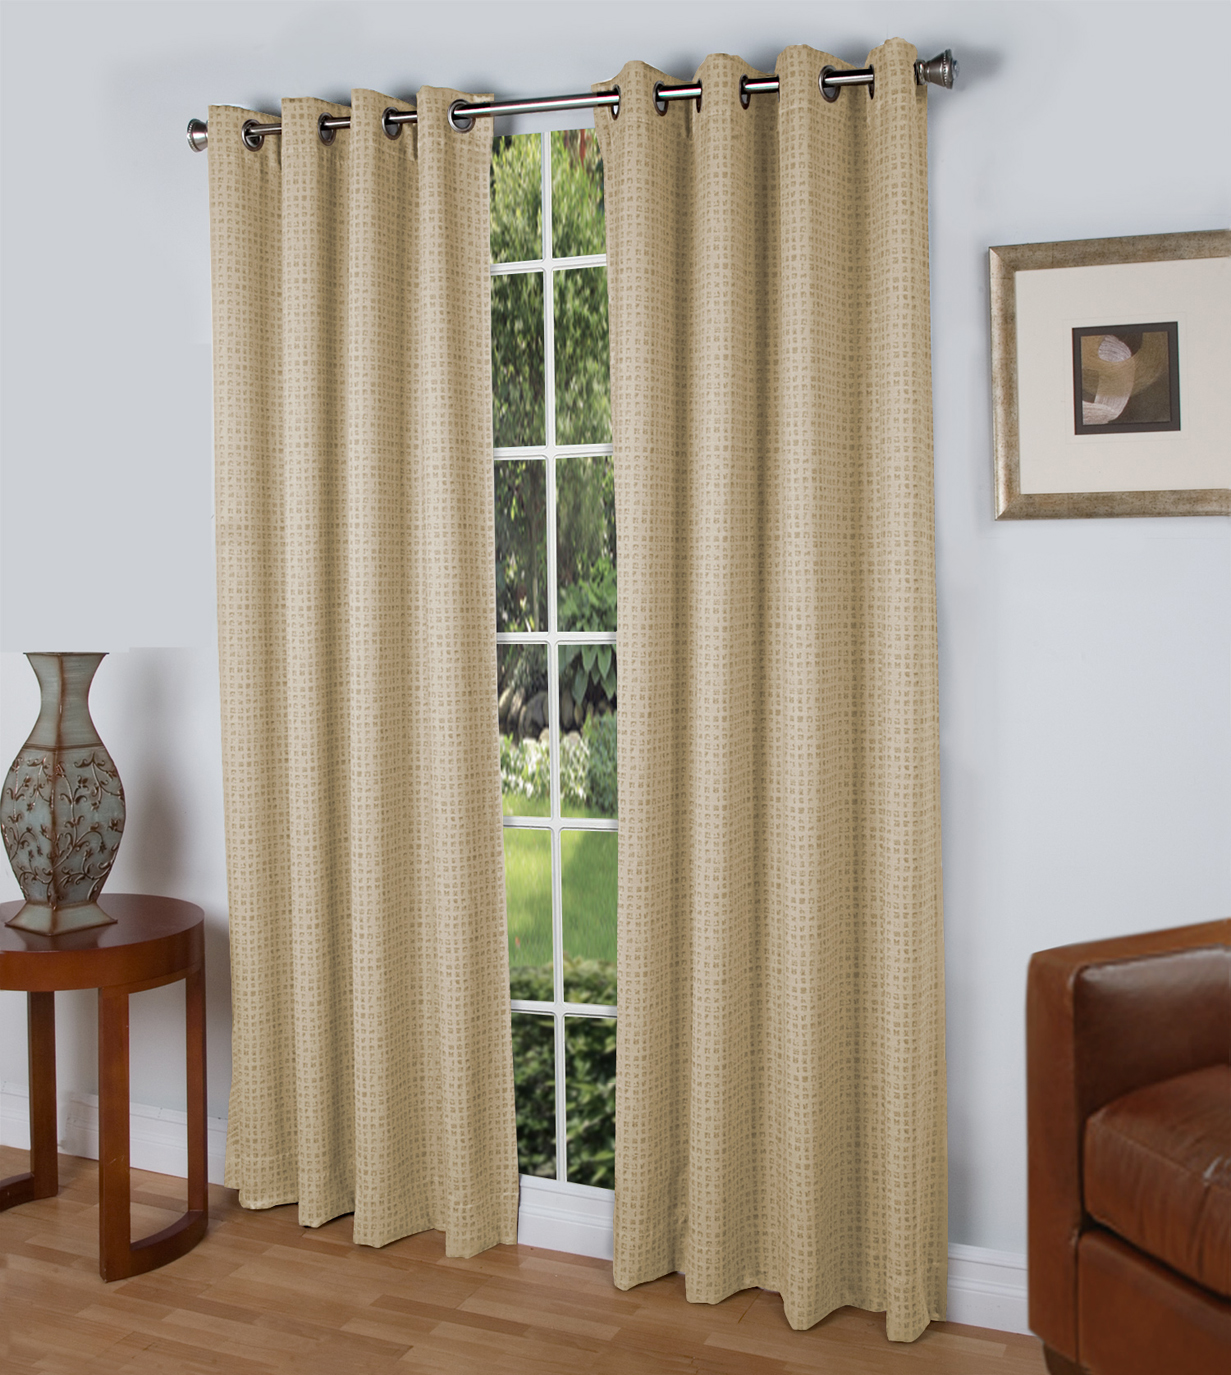 Perfect Interior Decorating Ideas with Thermal Insulated Curtains: Solid Thermal Insulated Blackout Curtain | Insulated Window Drapes | Thermal Insulated Curtains